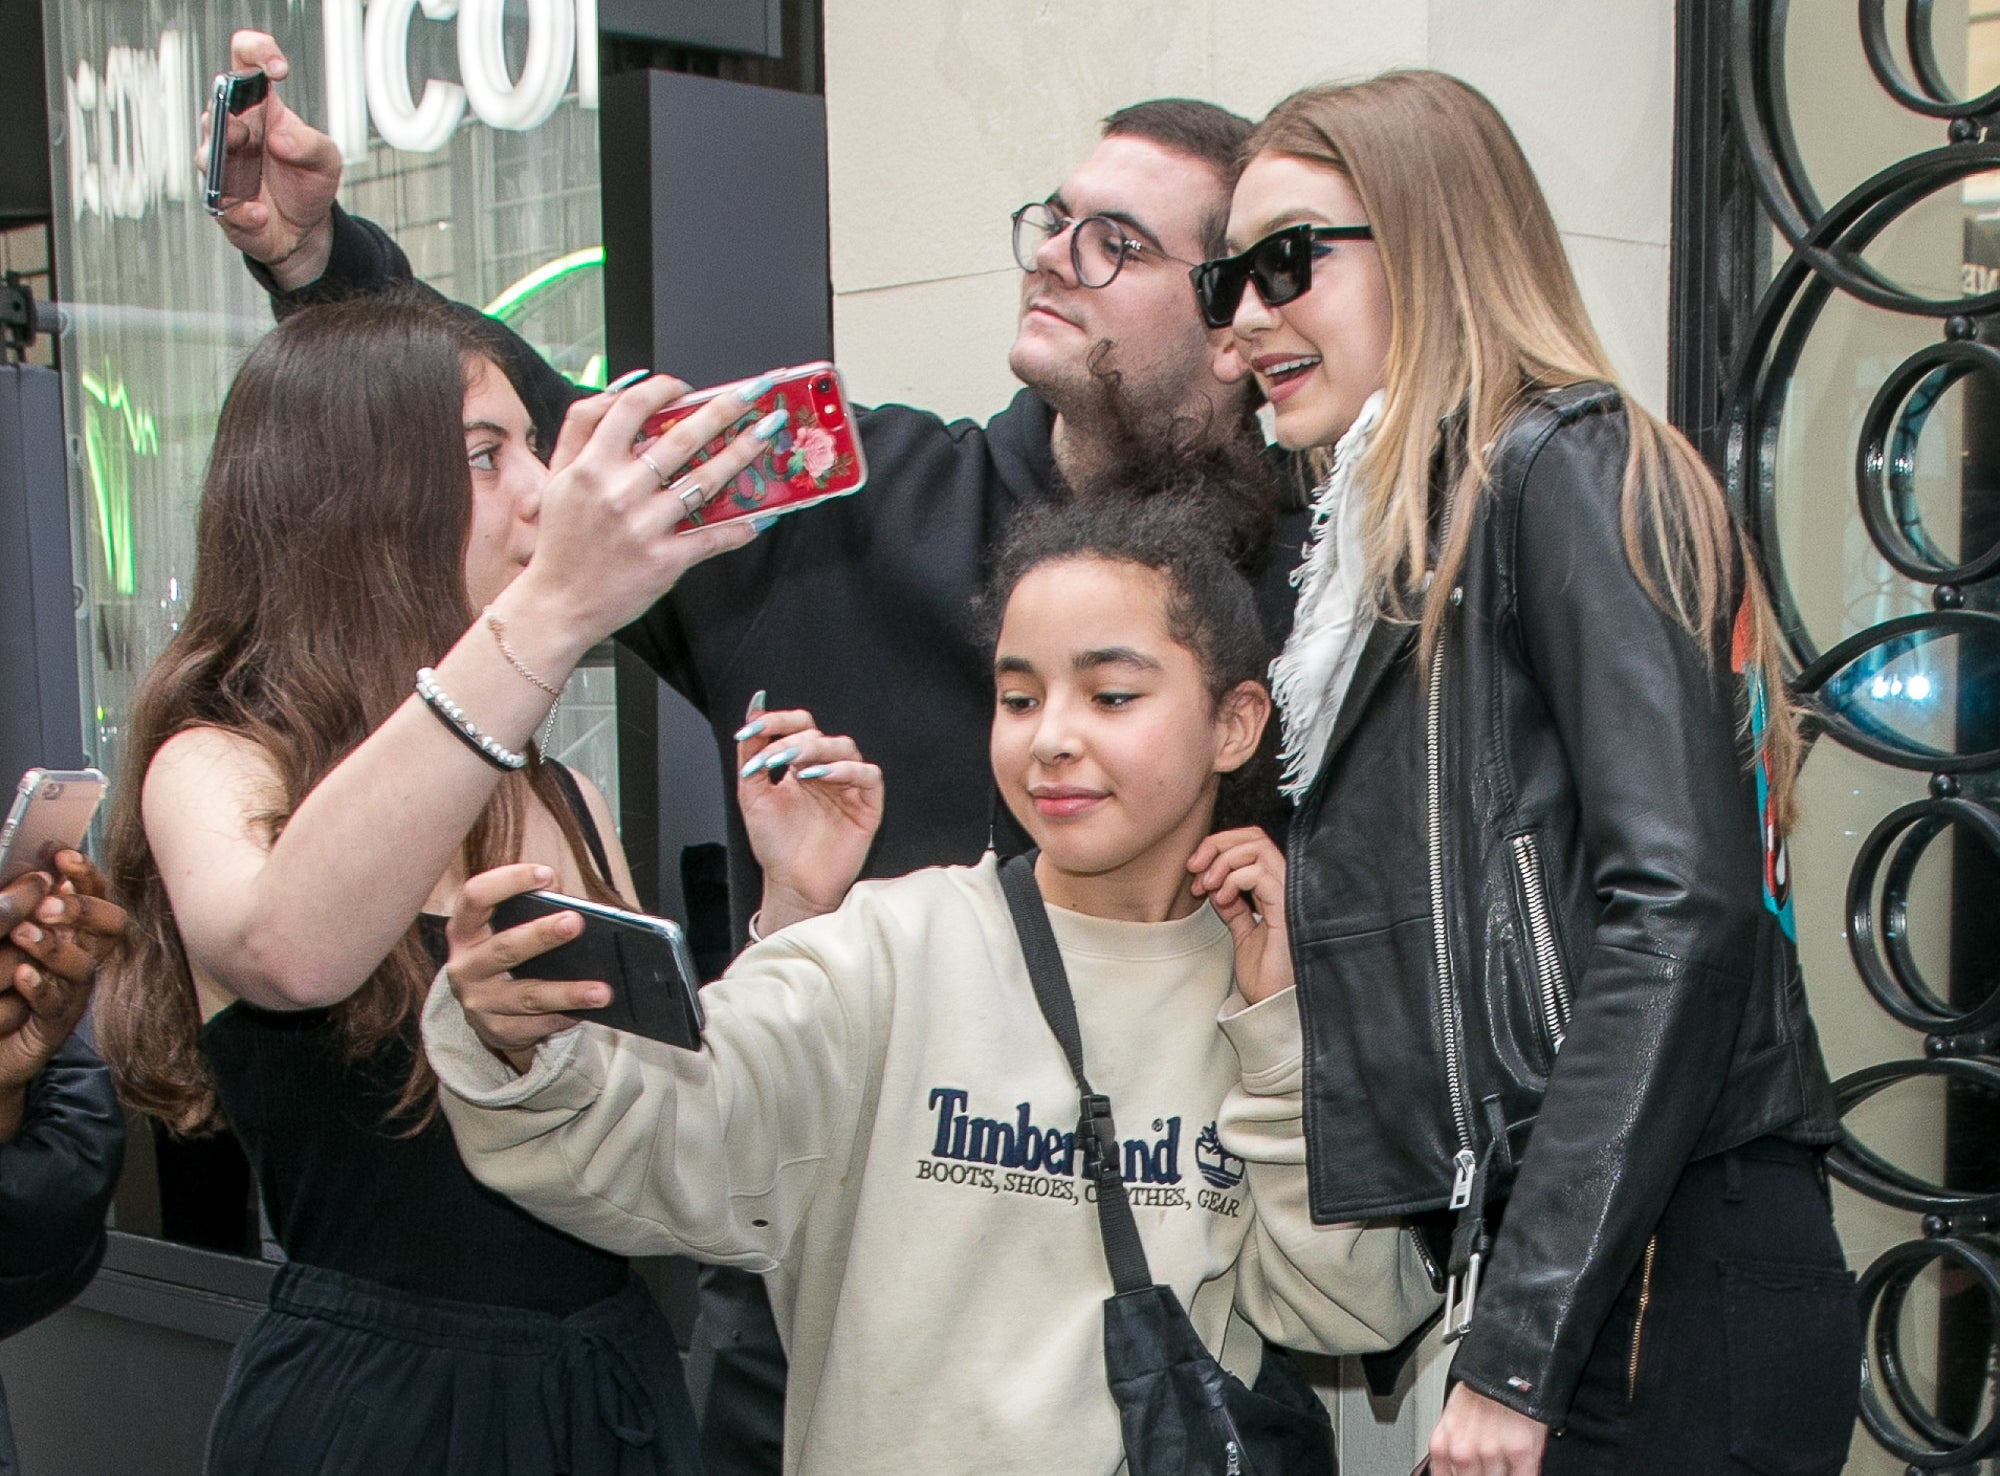 Gigi poses with a group of fans who all have their phones out to take photos before COVID